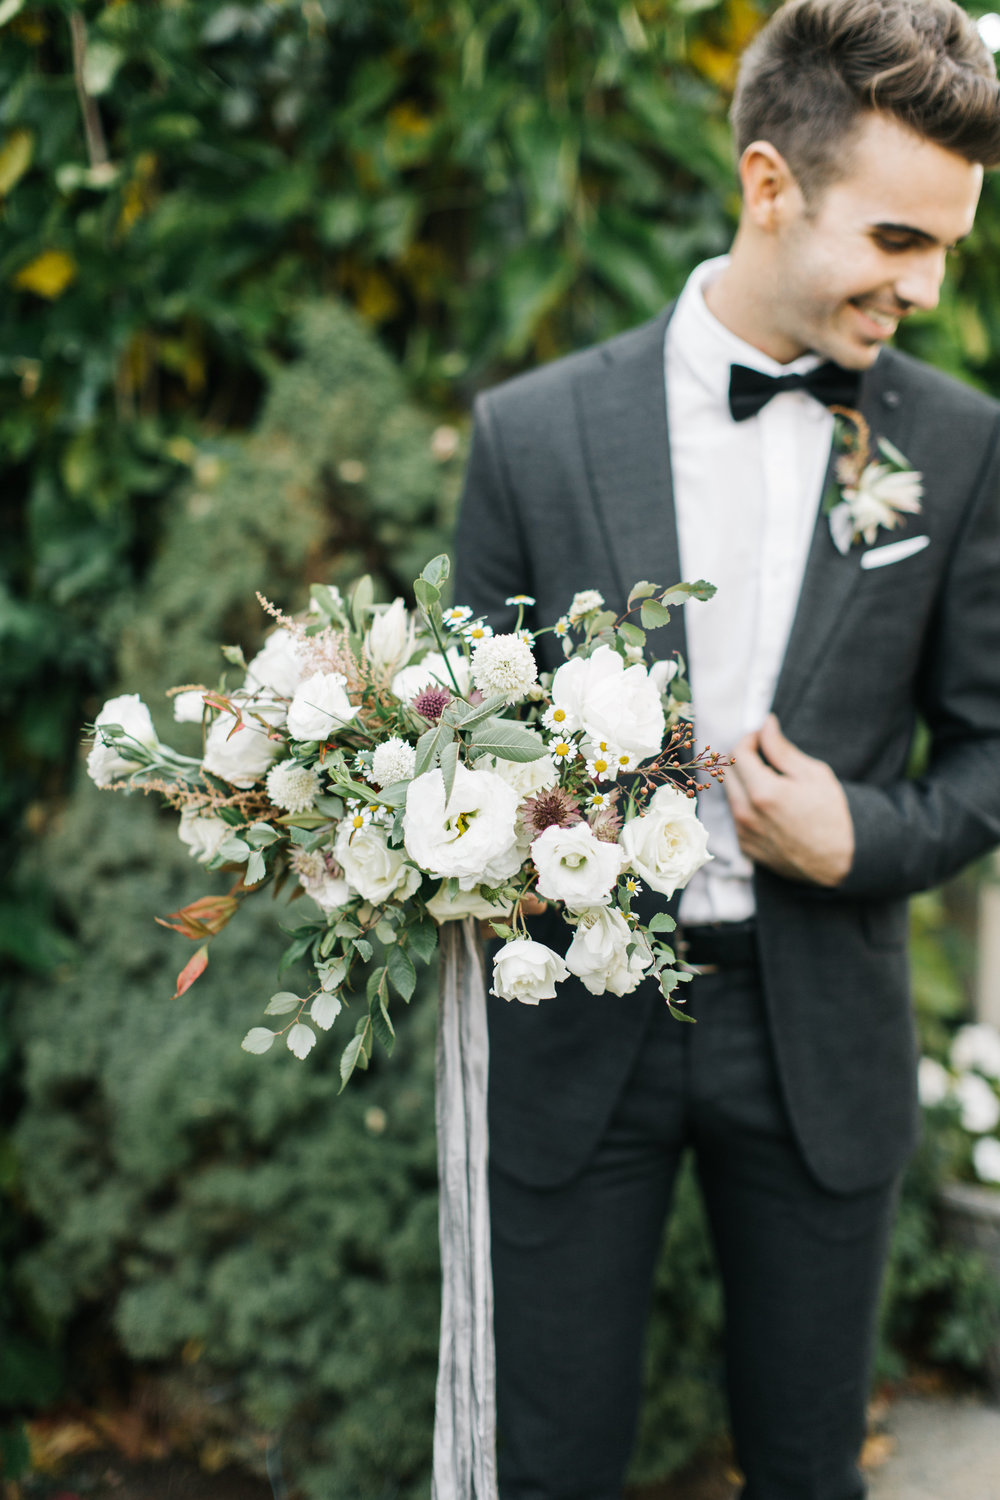 Mila Adams - Kentucky Utah Wedding Florist - Groom White Wedding Bouquet Garden Style